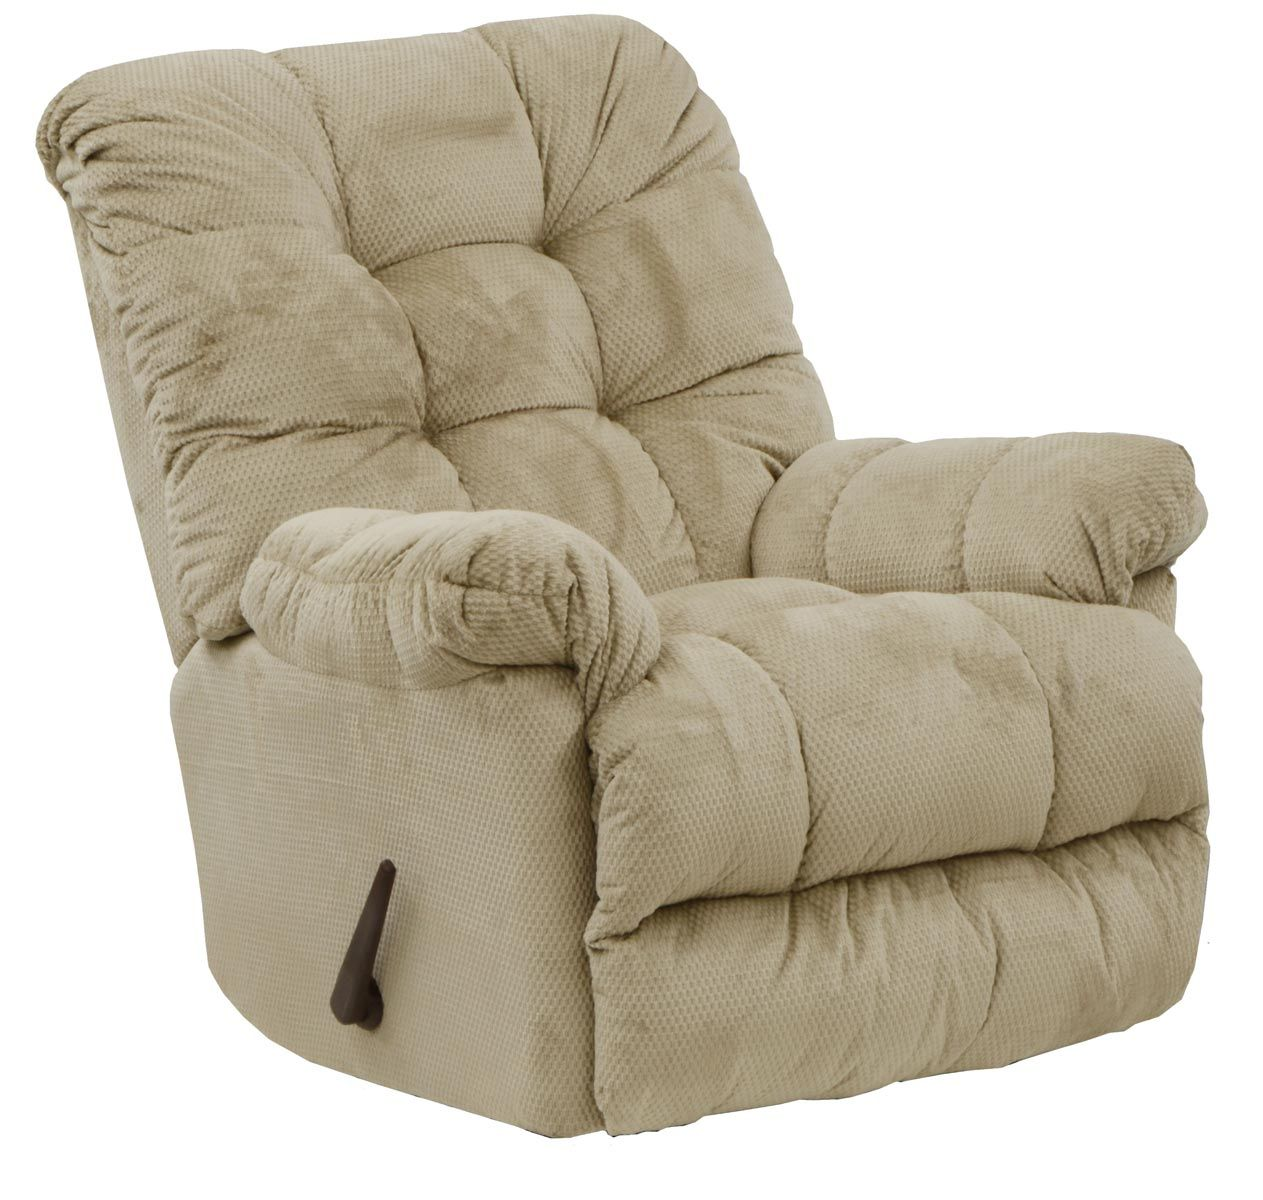 CatNapper Nettles Chaise Rocker Recliner with Deluxe Heat and Massage - Doe